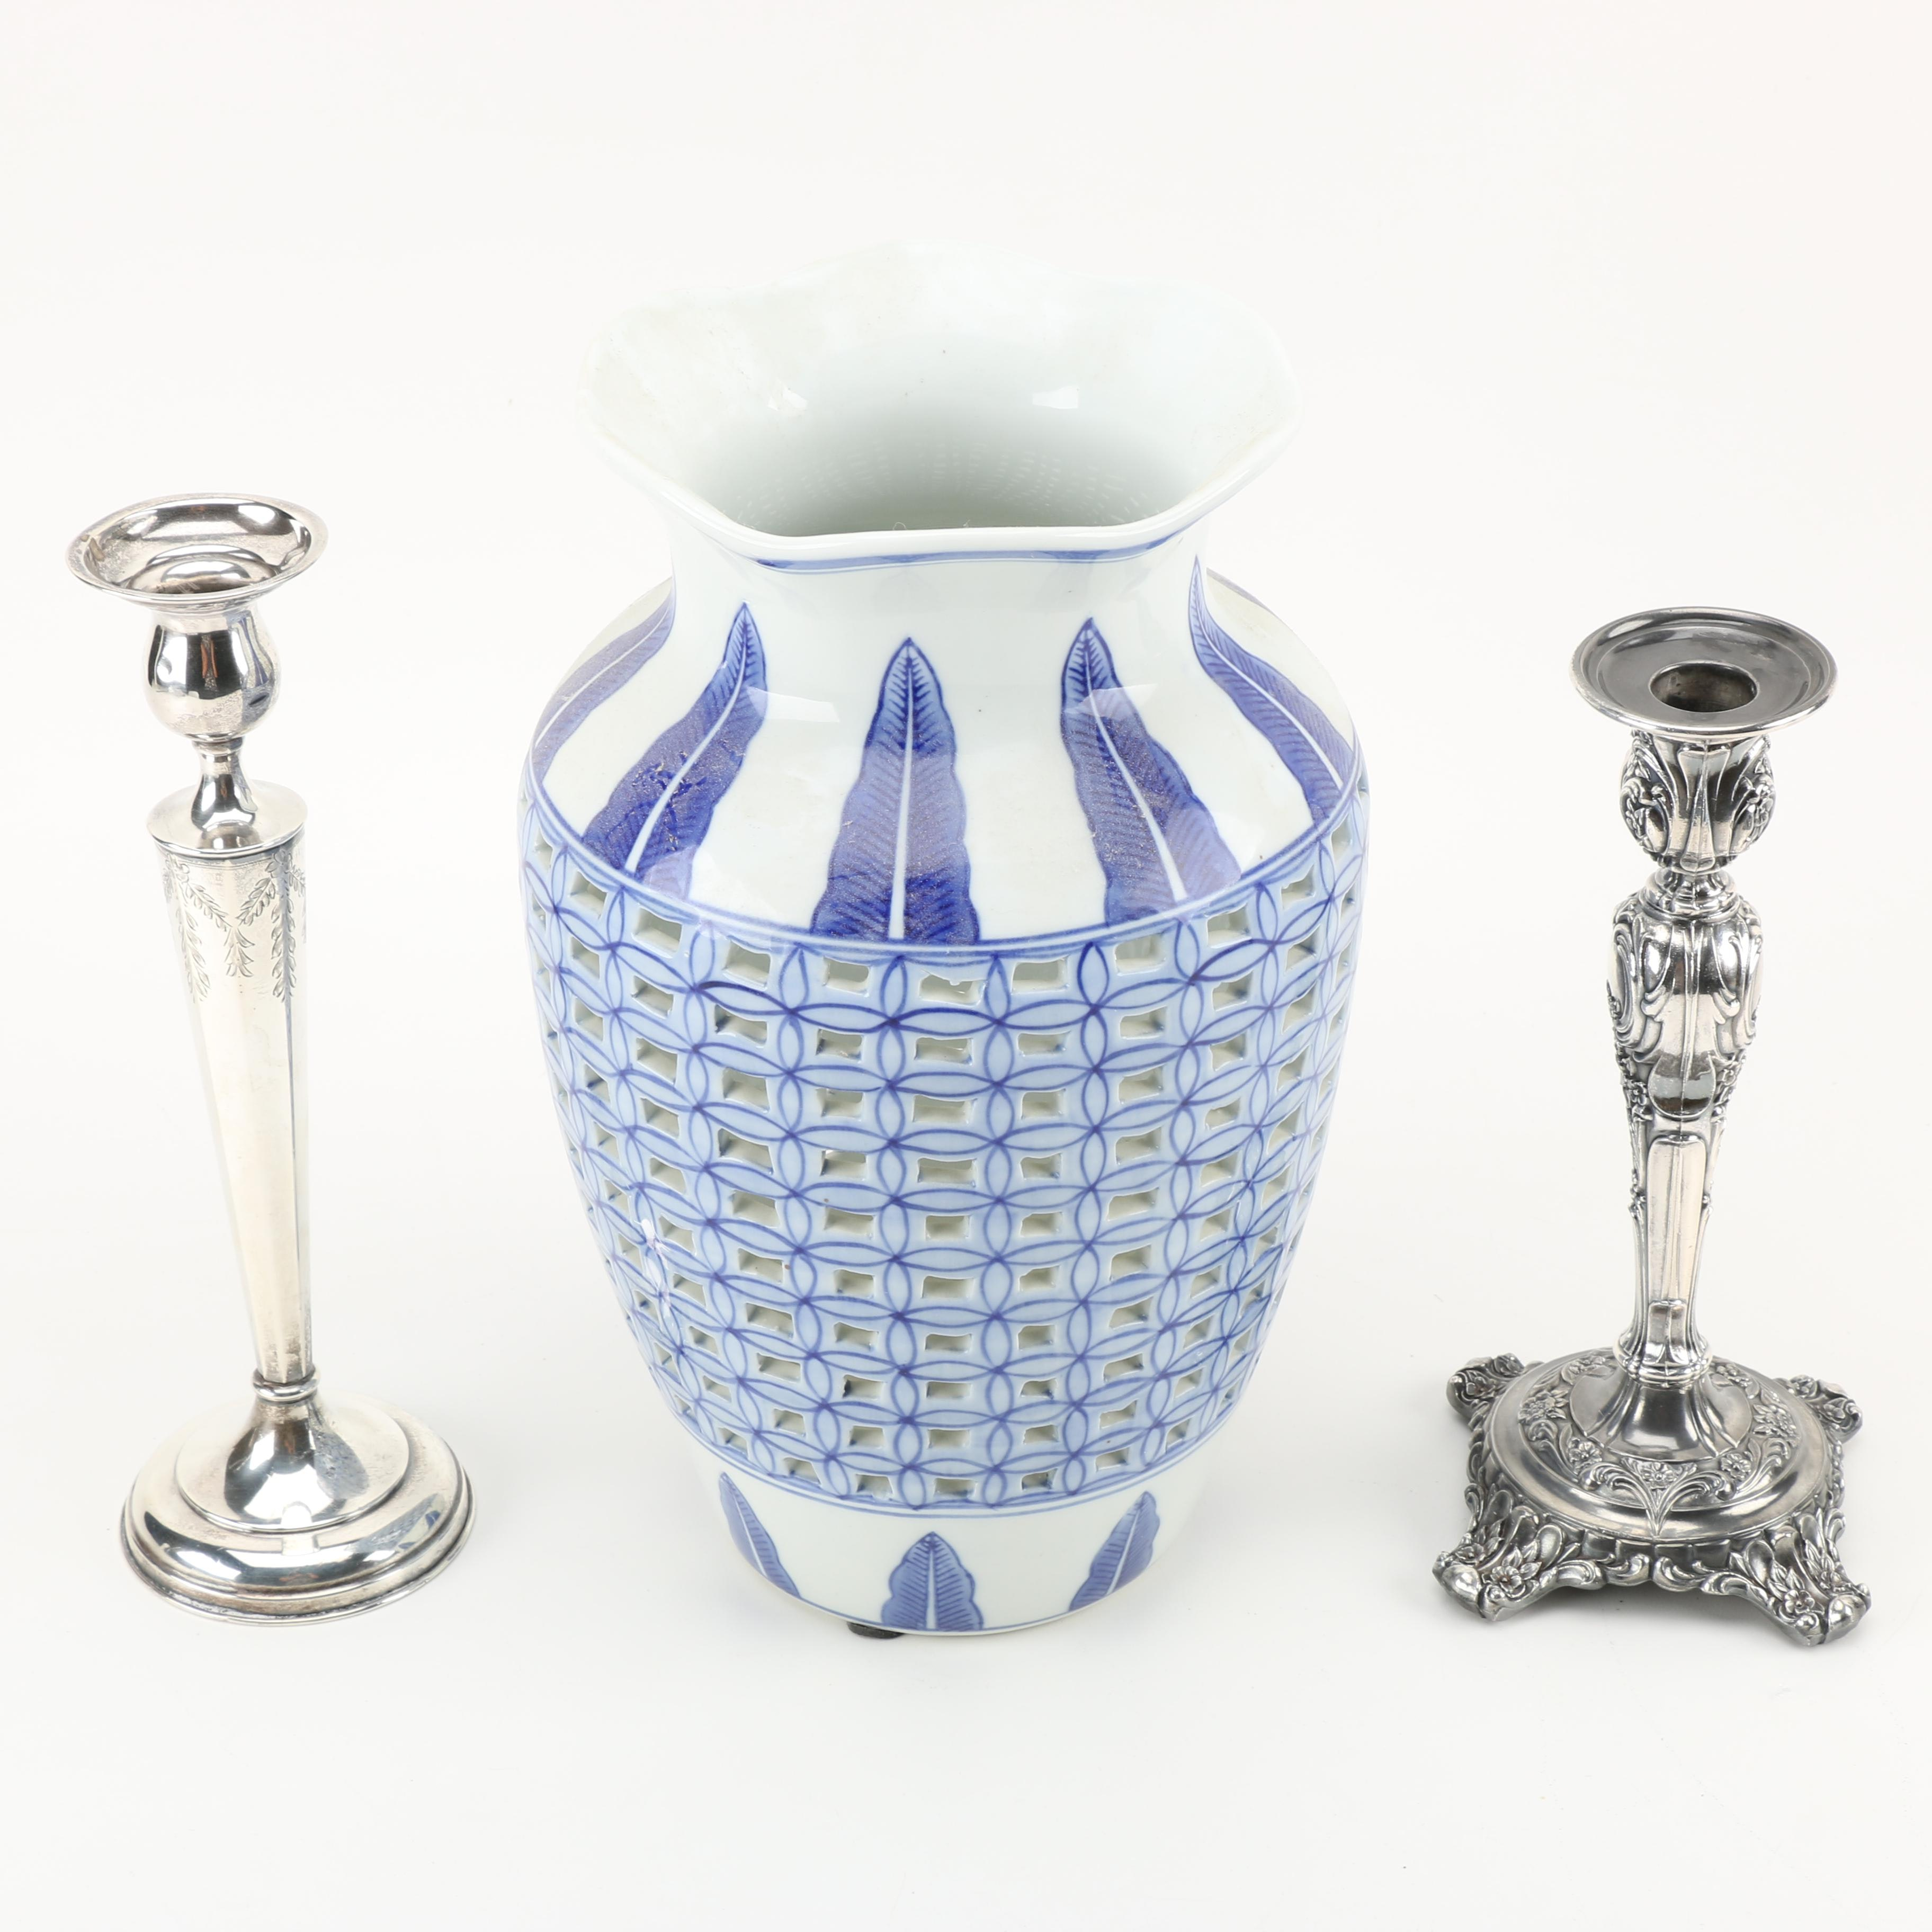 Liebs Silver Co Weighted Sterling Silver Candlestick and Chinese Vase